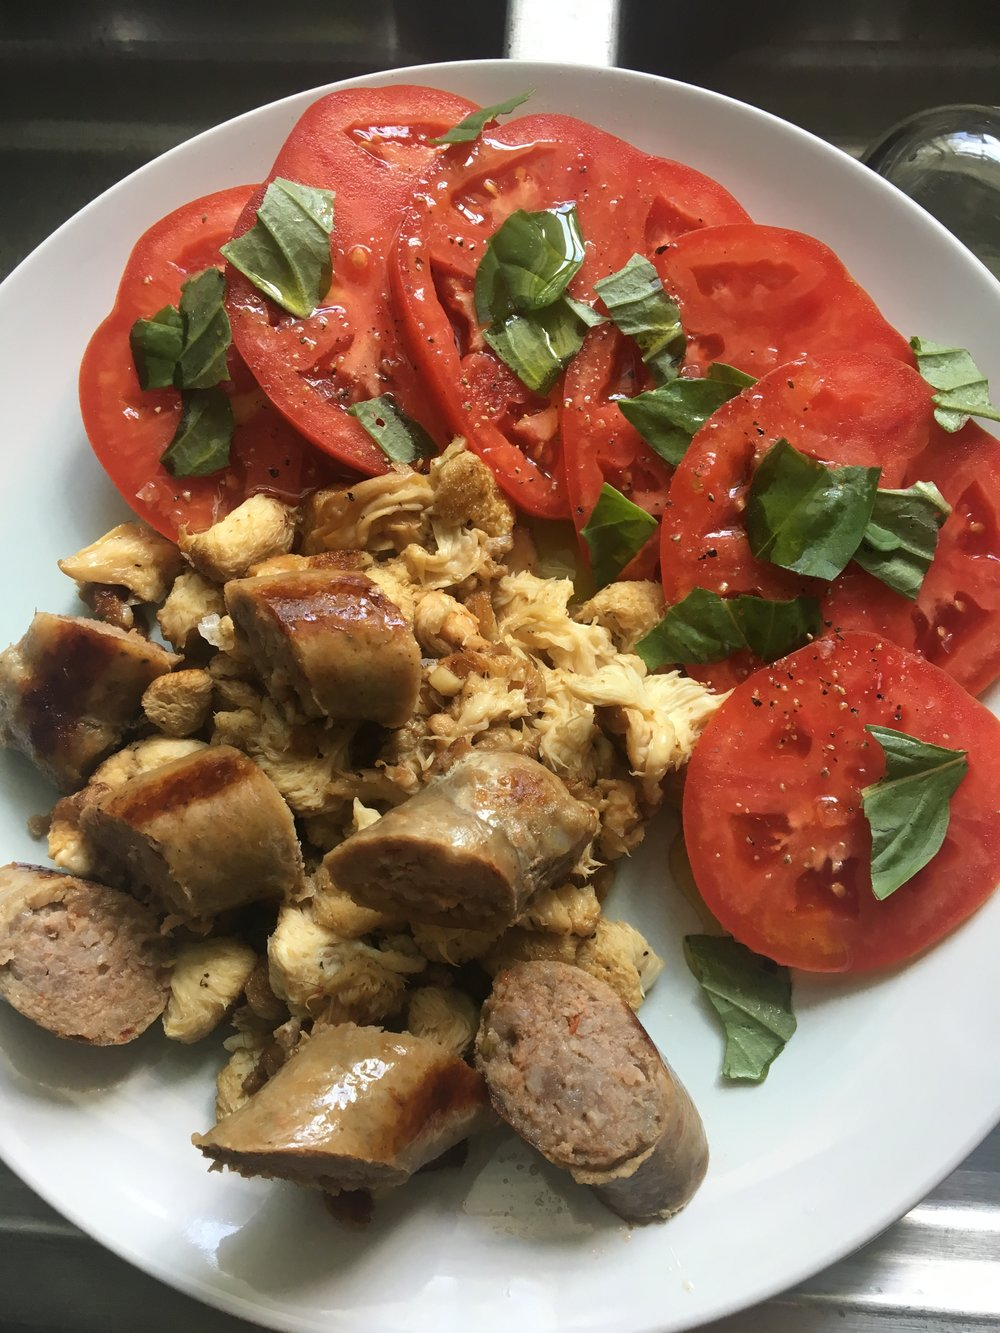 Lion's Mane sautéed with Savannah River Farms sausage and local organic tomatoes and Canewater Farm organic basil for lunch.